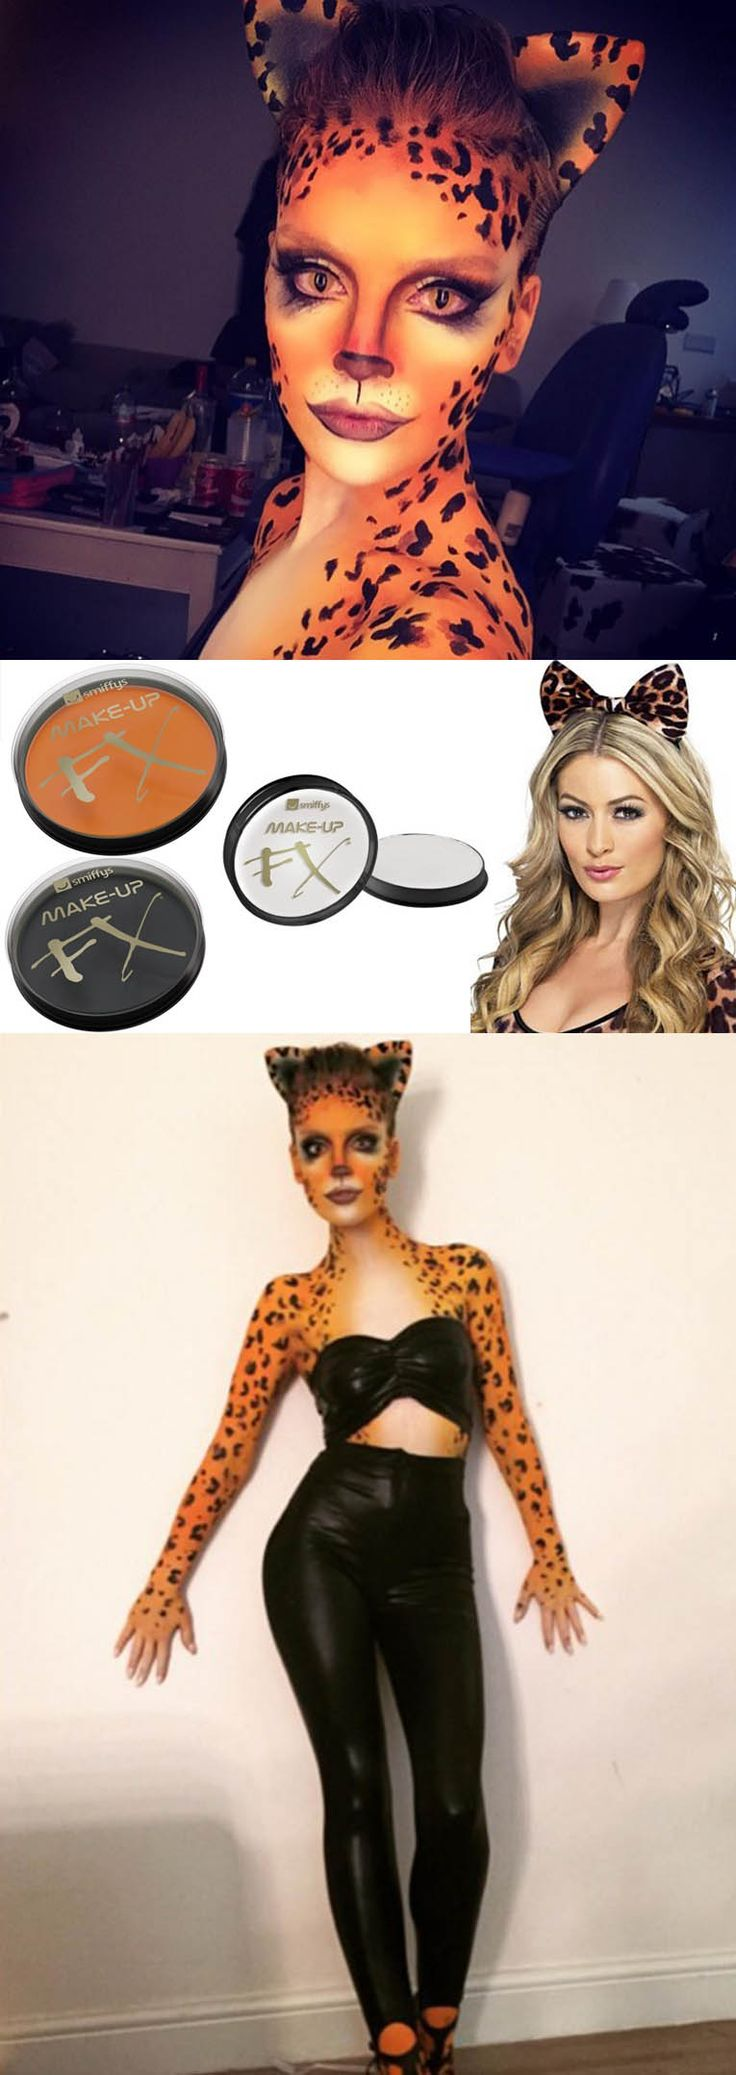 If you're as obsessed with fancy dress as we, get inspired by Perrie Edwards's recent cheetah-inspired makeup and get set to copycat her killer look. We asked the party experts at Smiffys to share their top tips for DIY face painting so you'll look scary for all the right reasons.